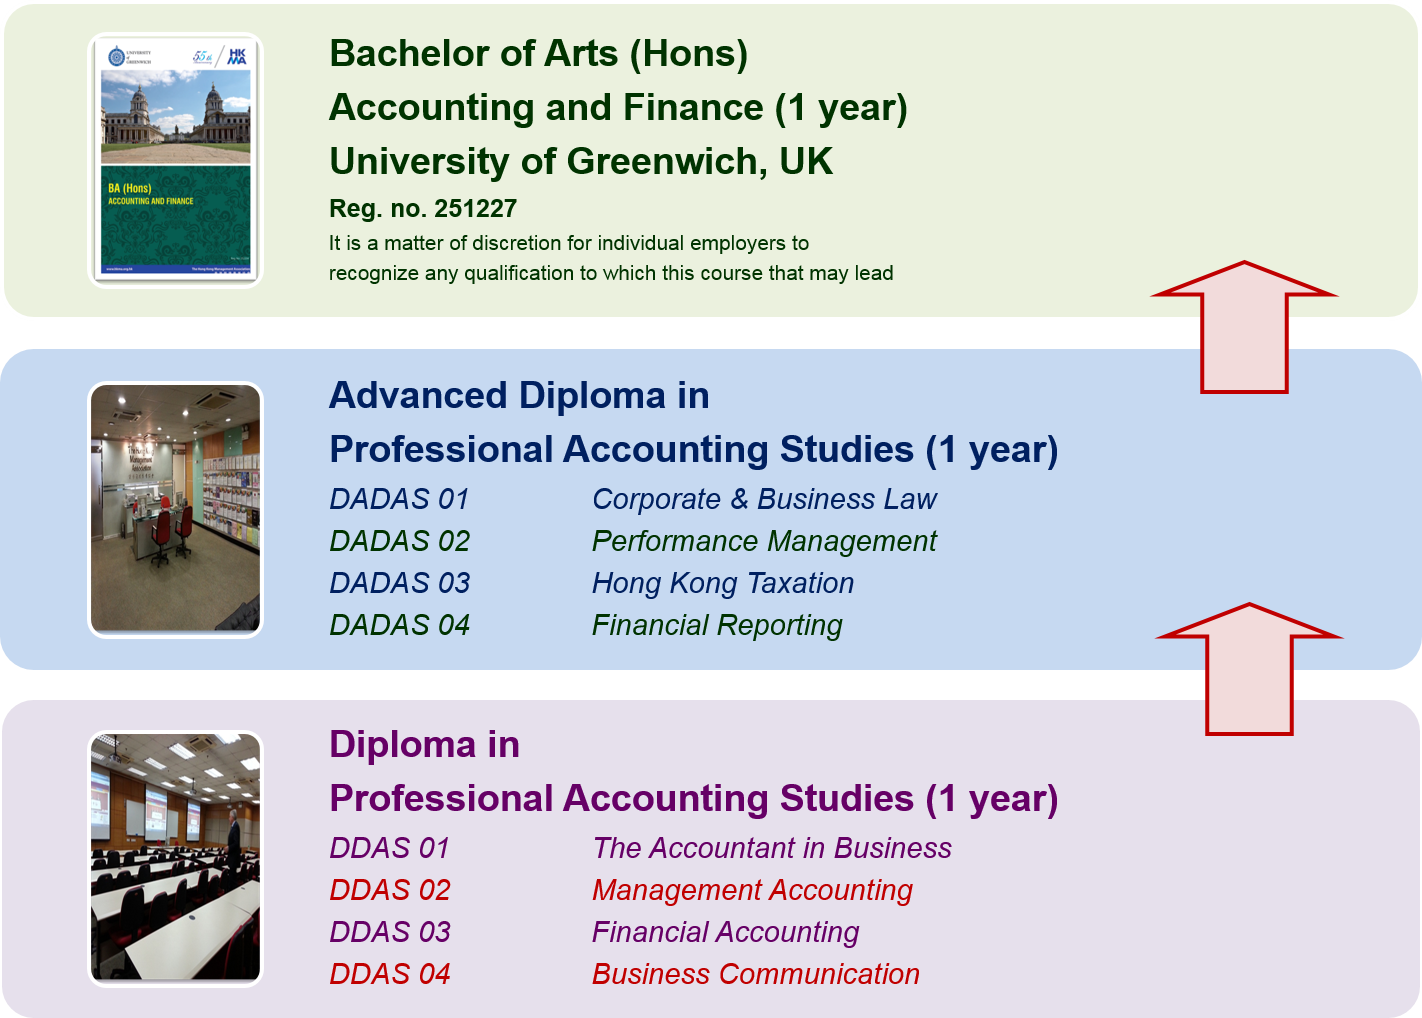 dissertation projects in finance Elements of a narrative essay dissertation projects for mba finance essay cheat best resume writing services 2014 for accountants.